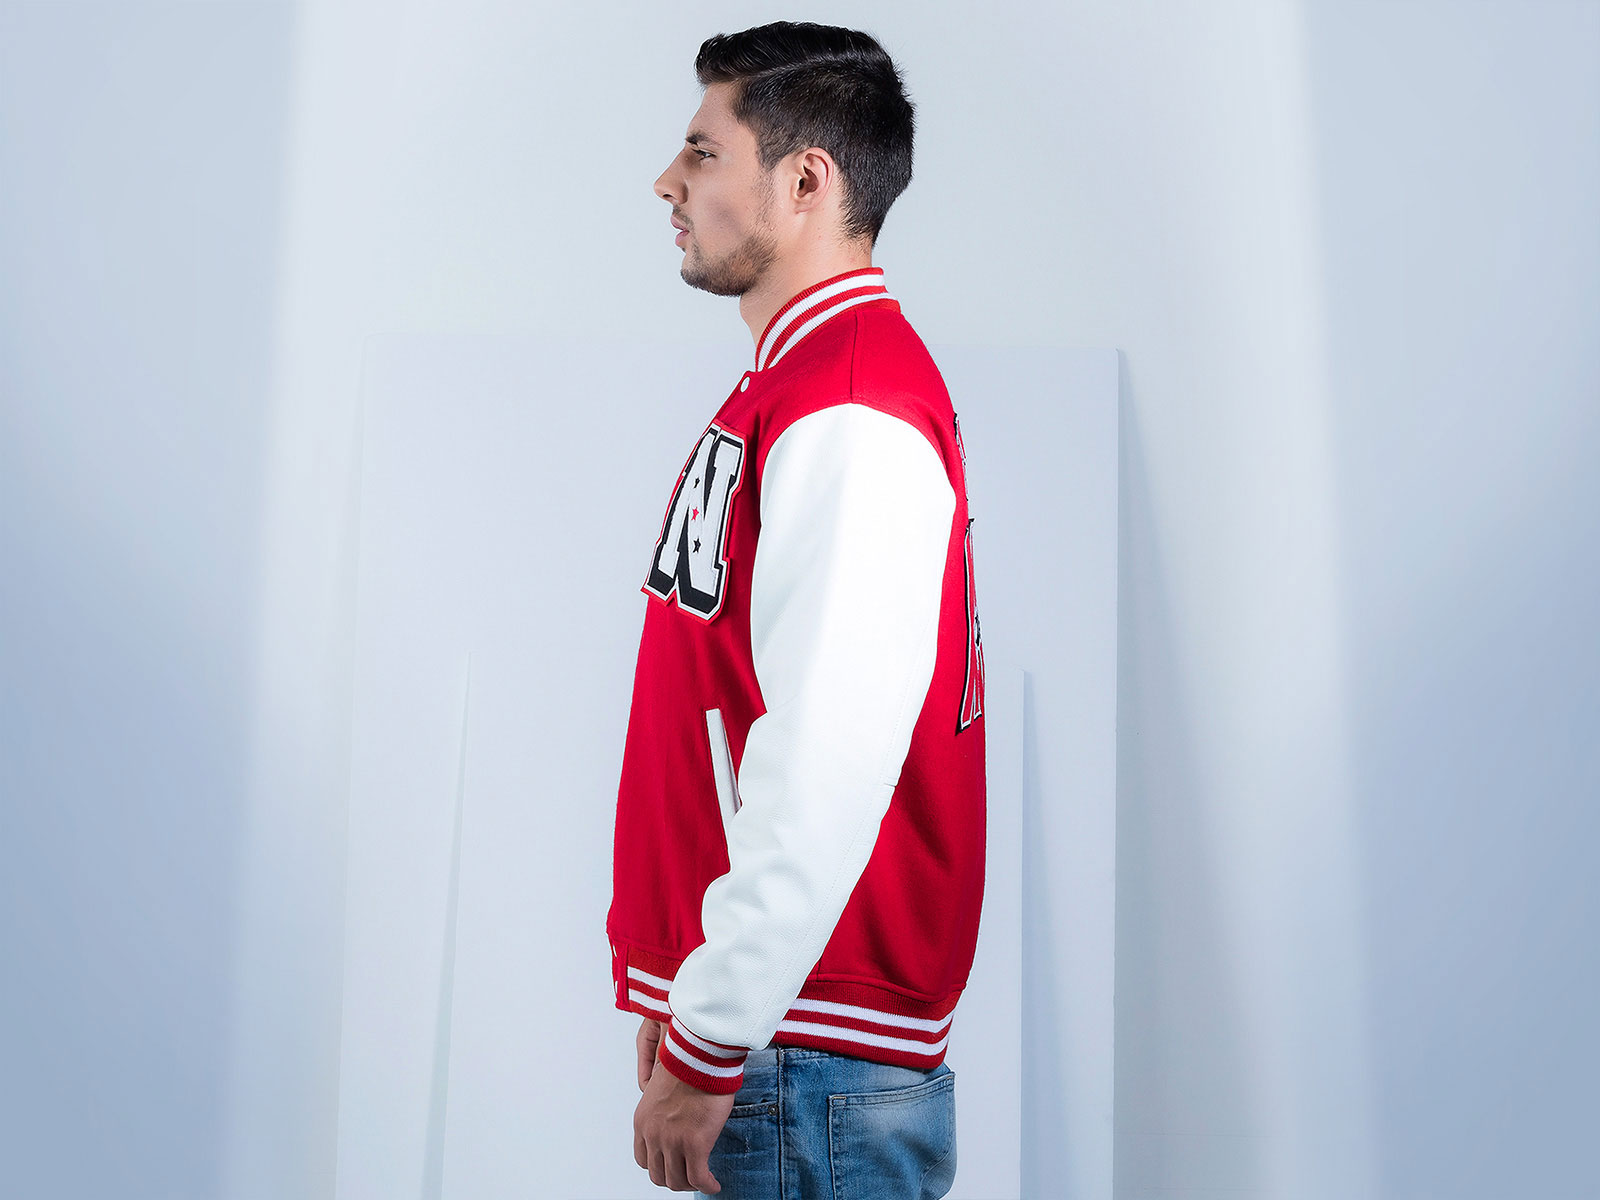 Custom Letterman Jackets For Men